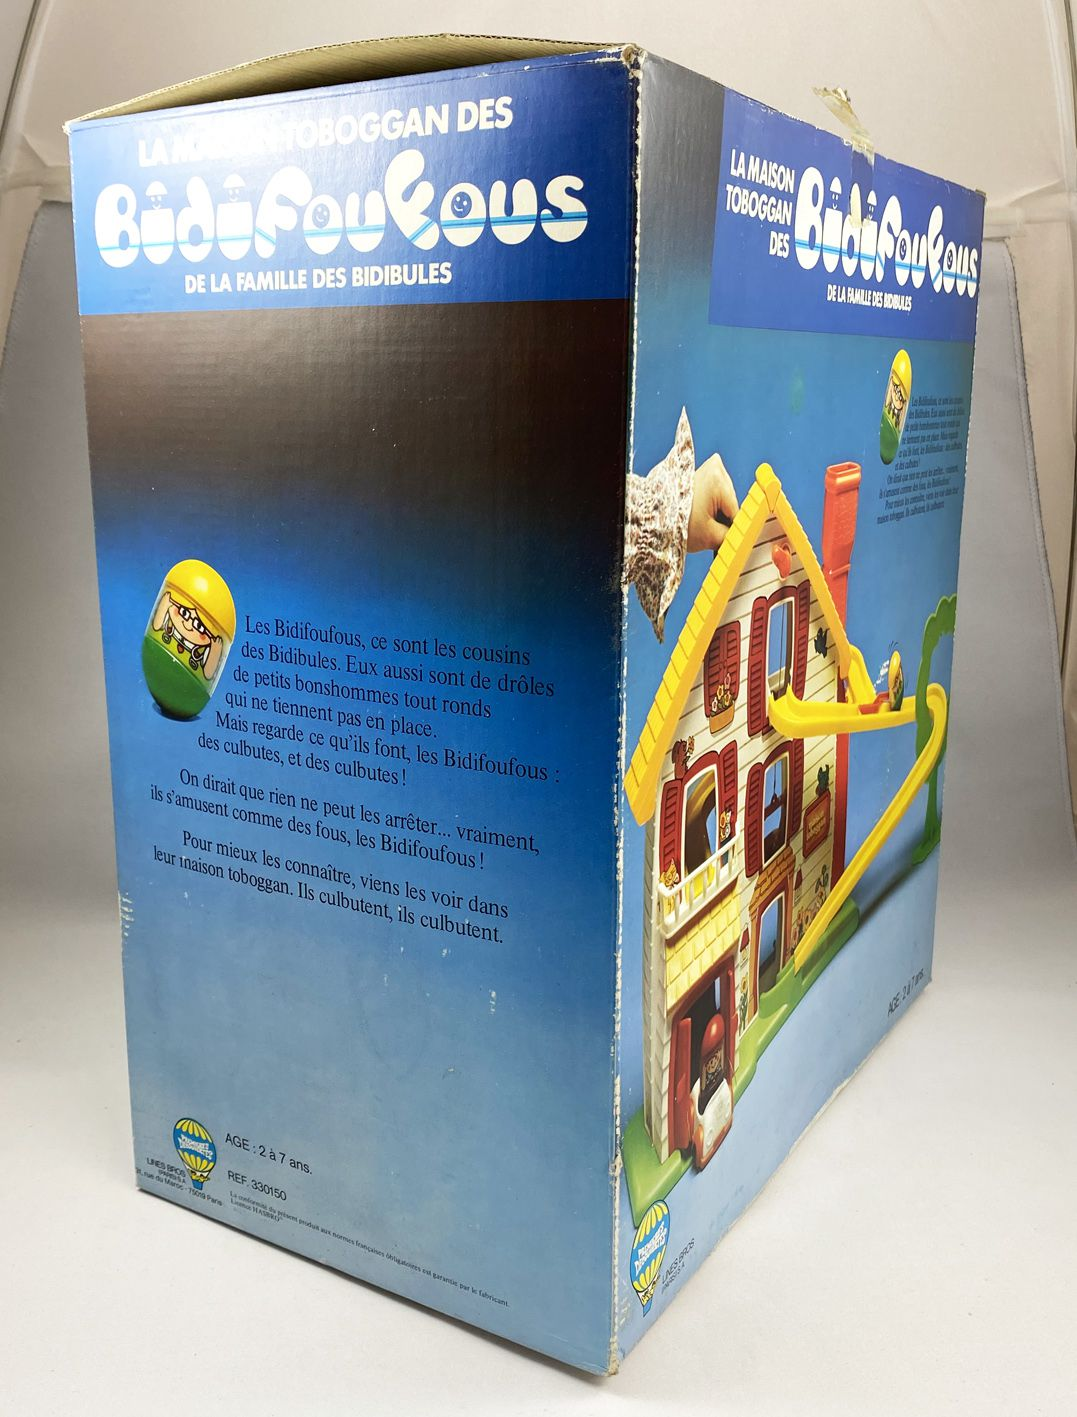 Weebles - Hasbro (Lines Bros) - Weebles Slide House (mint in box)